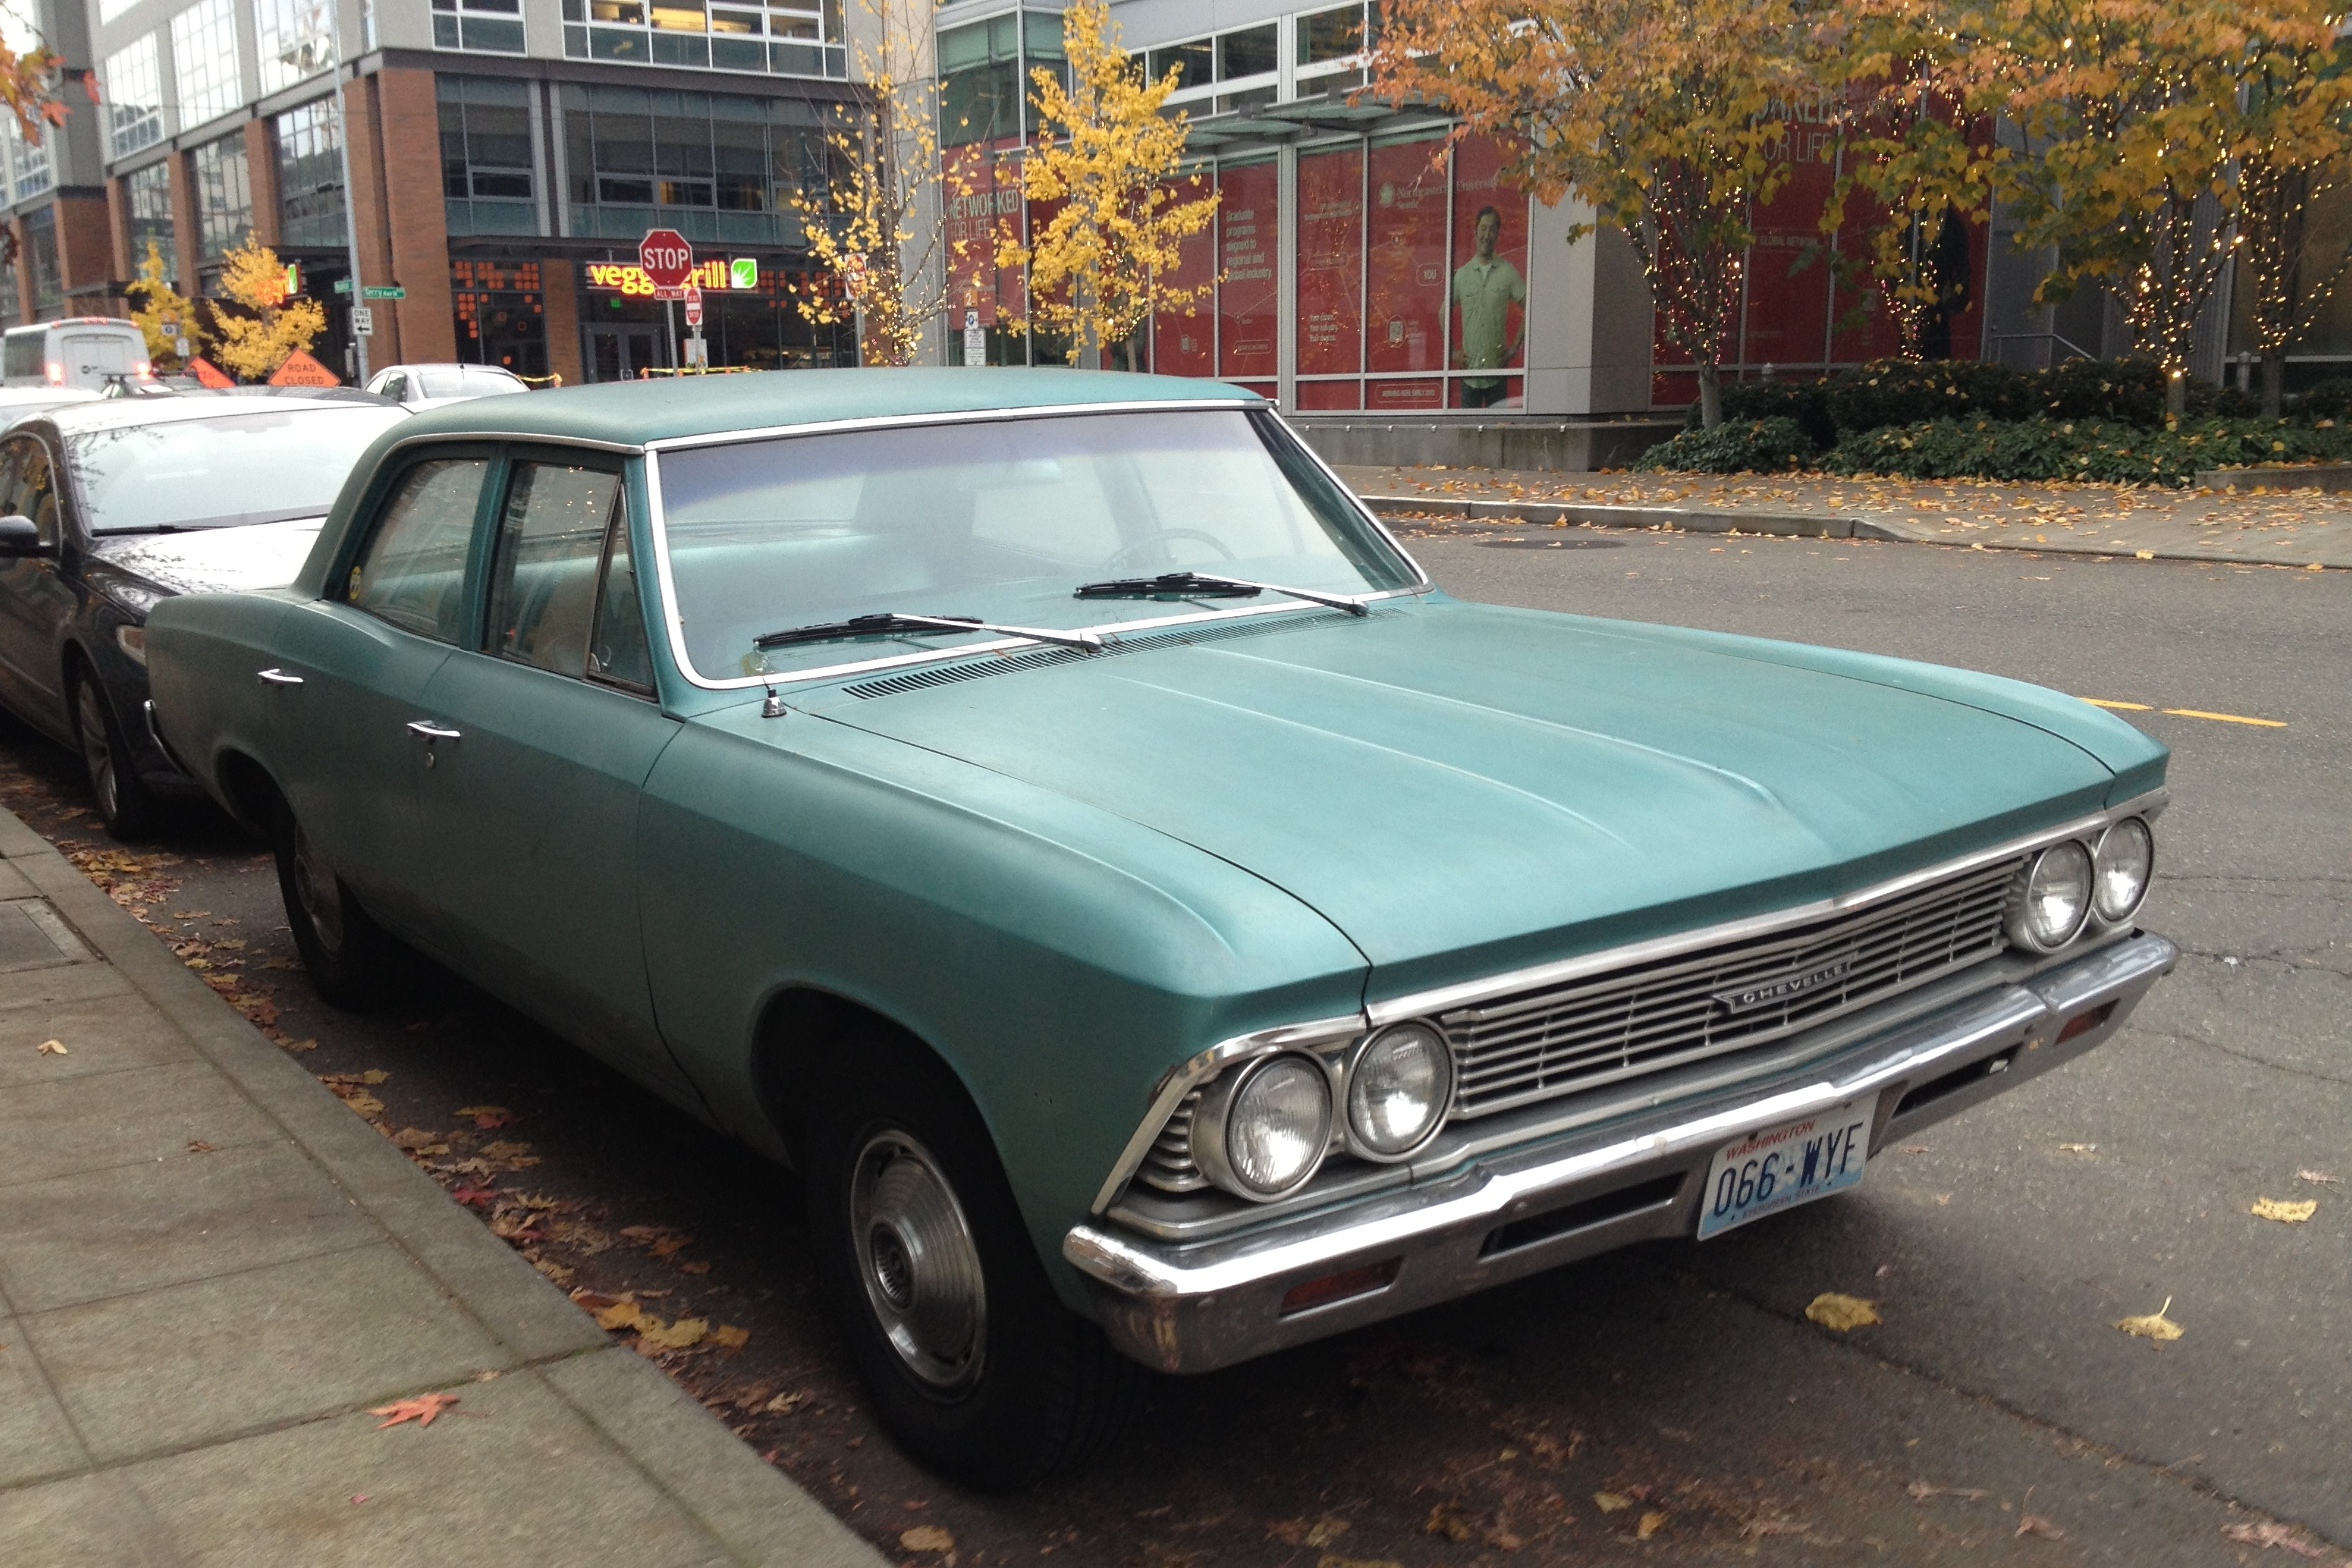 Street Parked 1966 Chevelle Sedan on chevy malibu muscle car